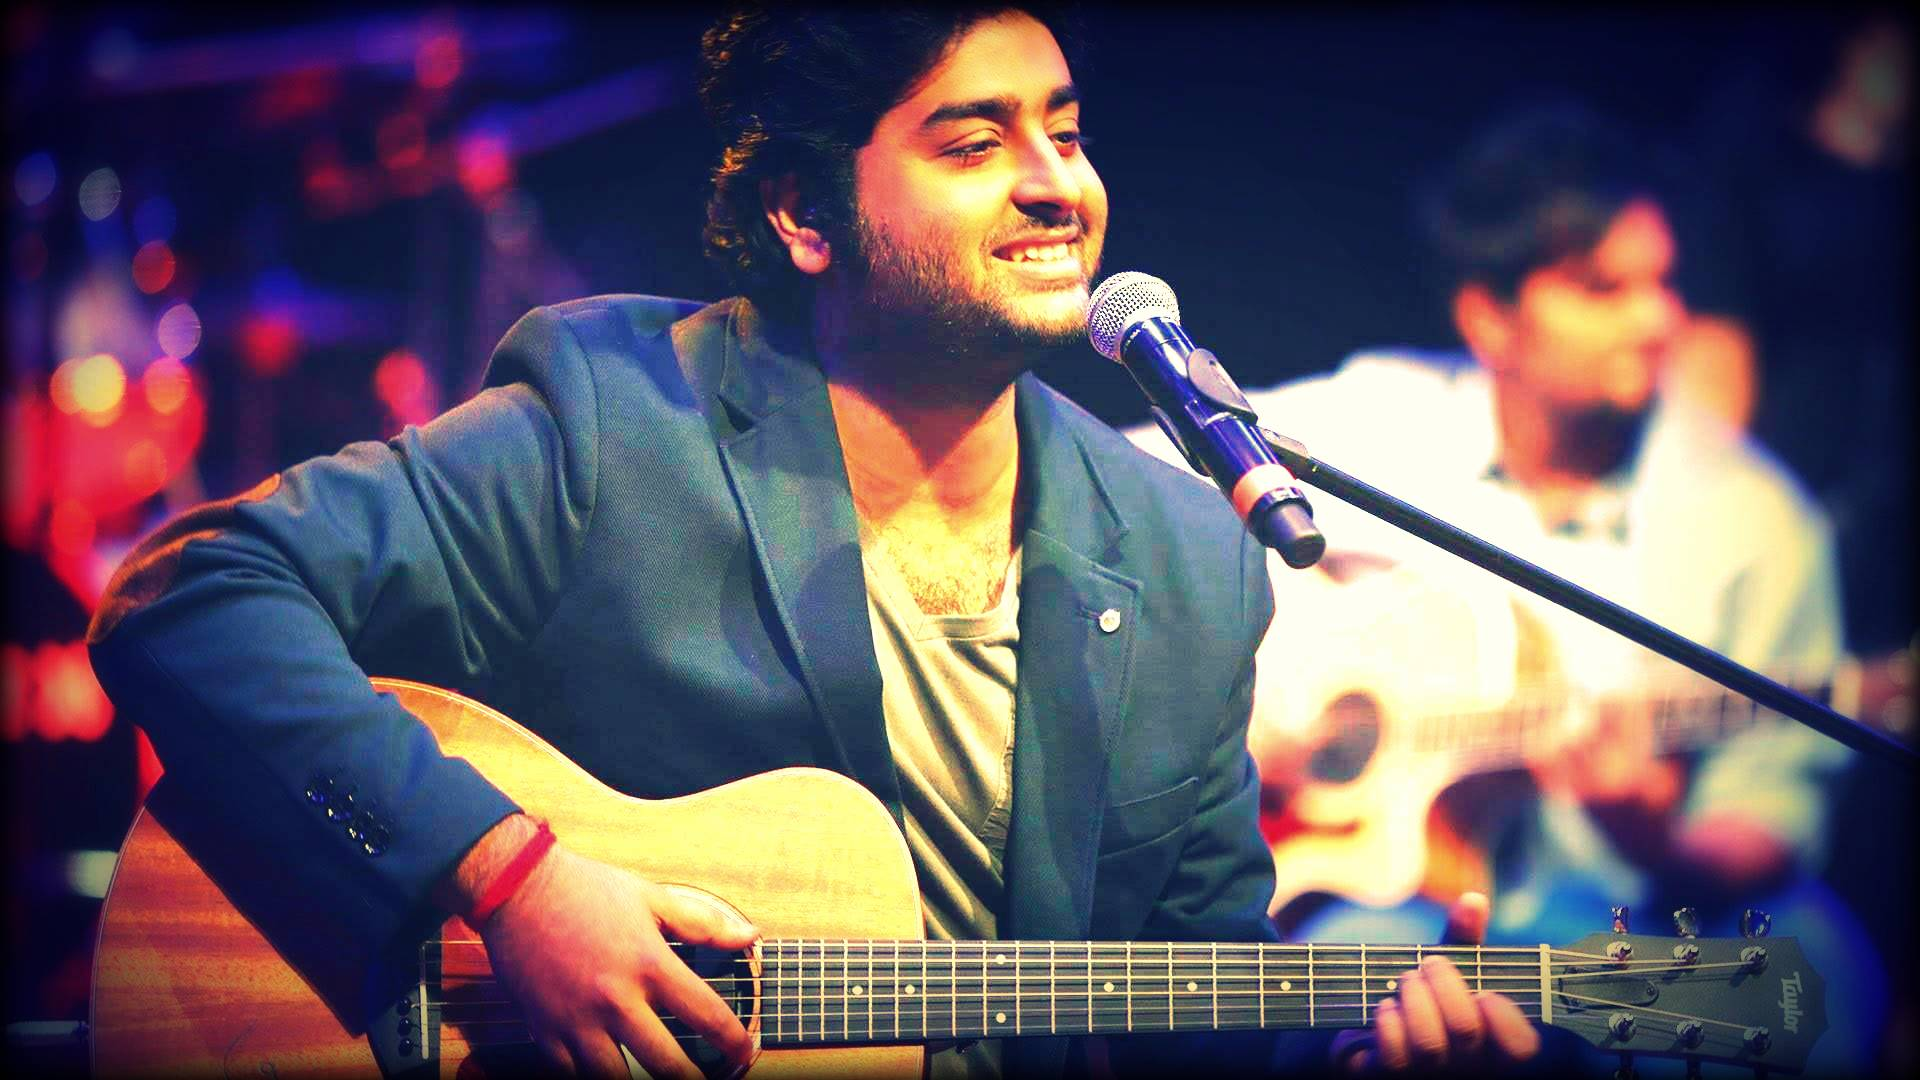 Arijit Singh Images Arijit Singh Hd Wallpaper And Background Photos